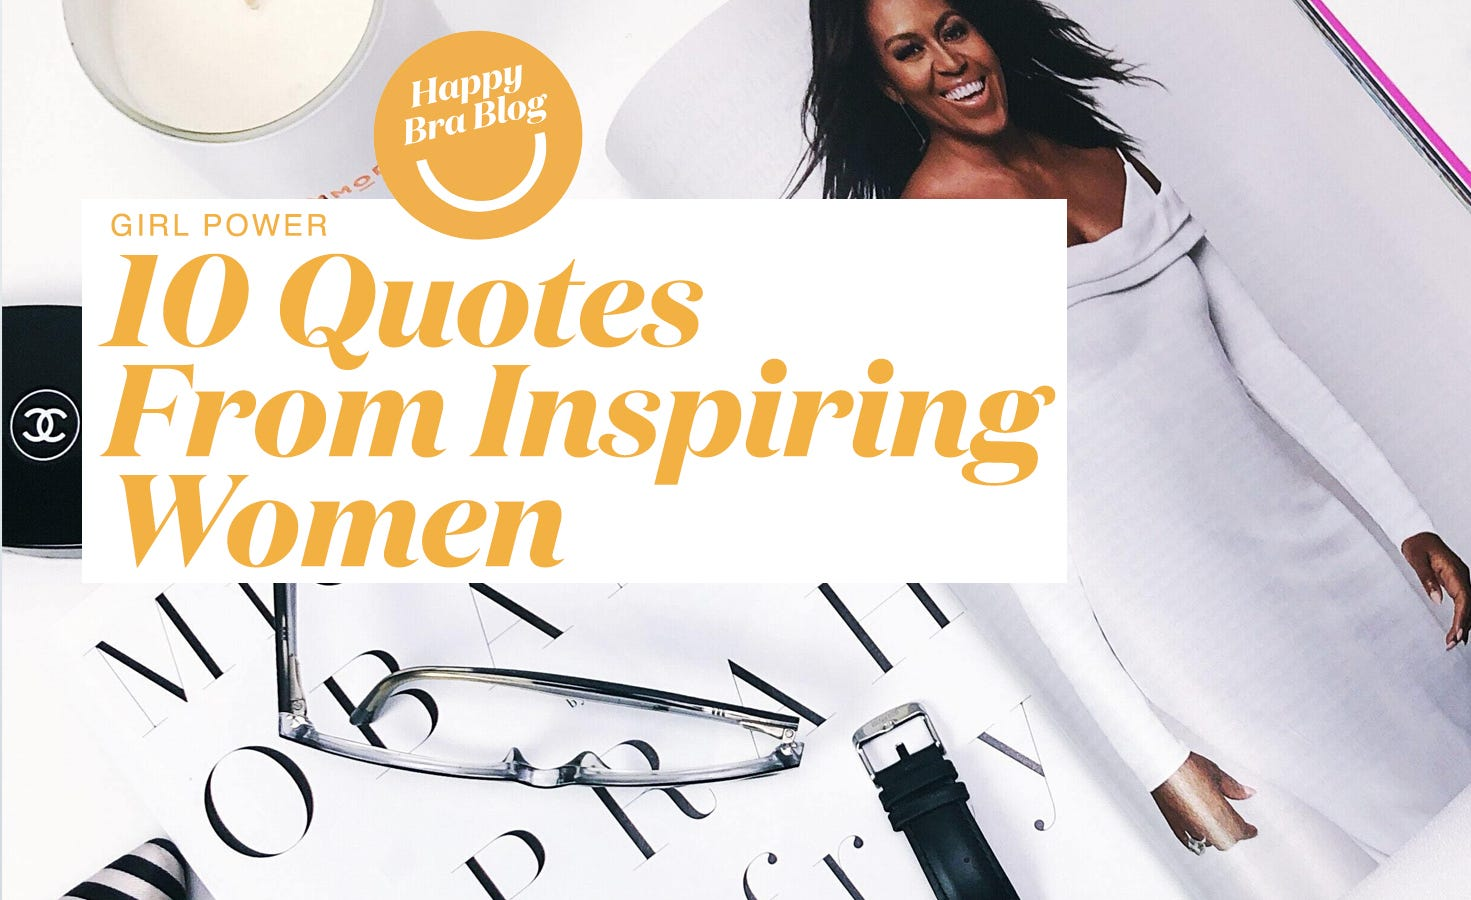 10 inspiring quotes from women text over picture of Michelle Obama in a magazine with camera, glasses, and watch on the side.